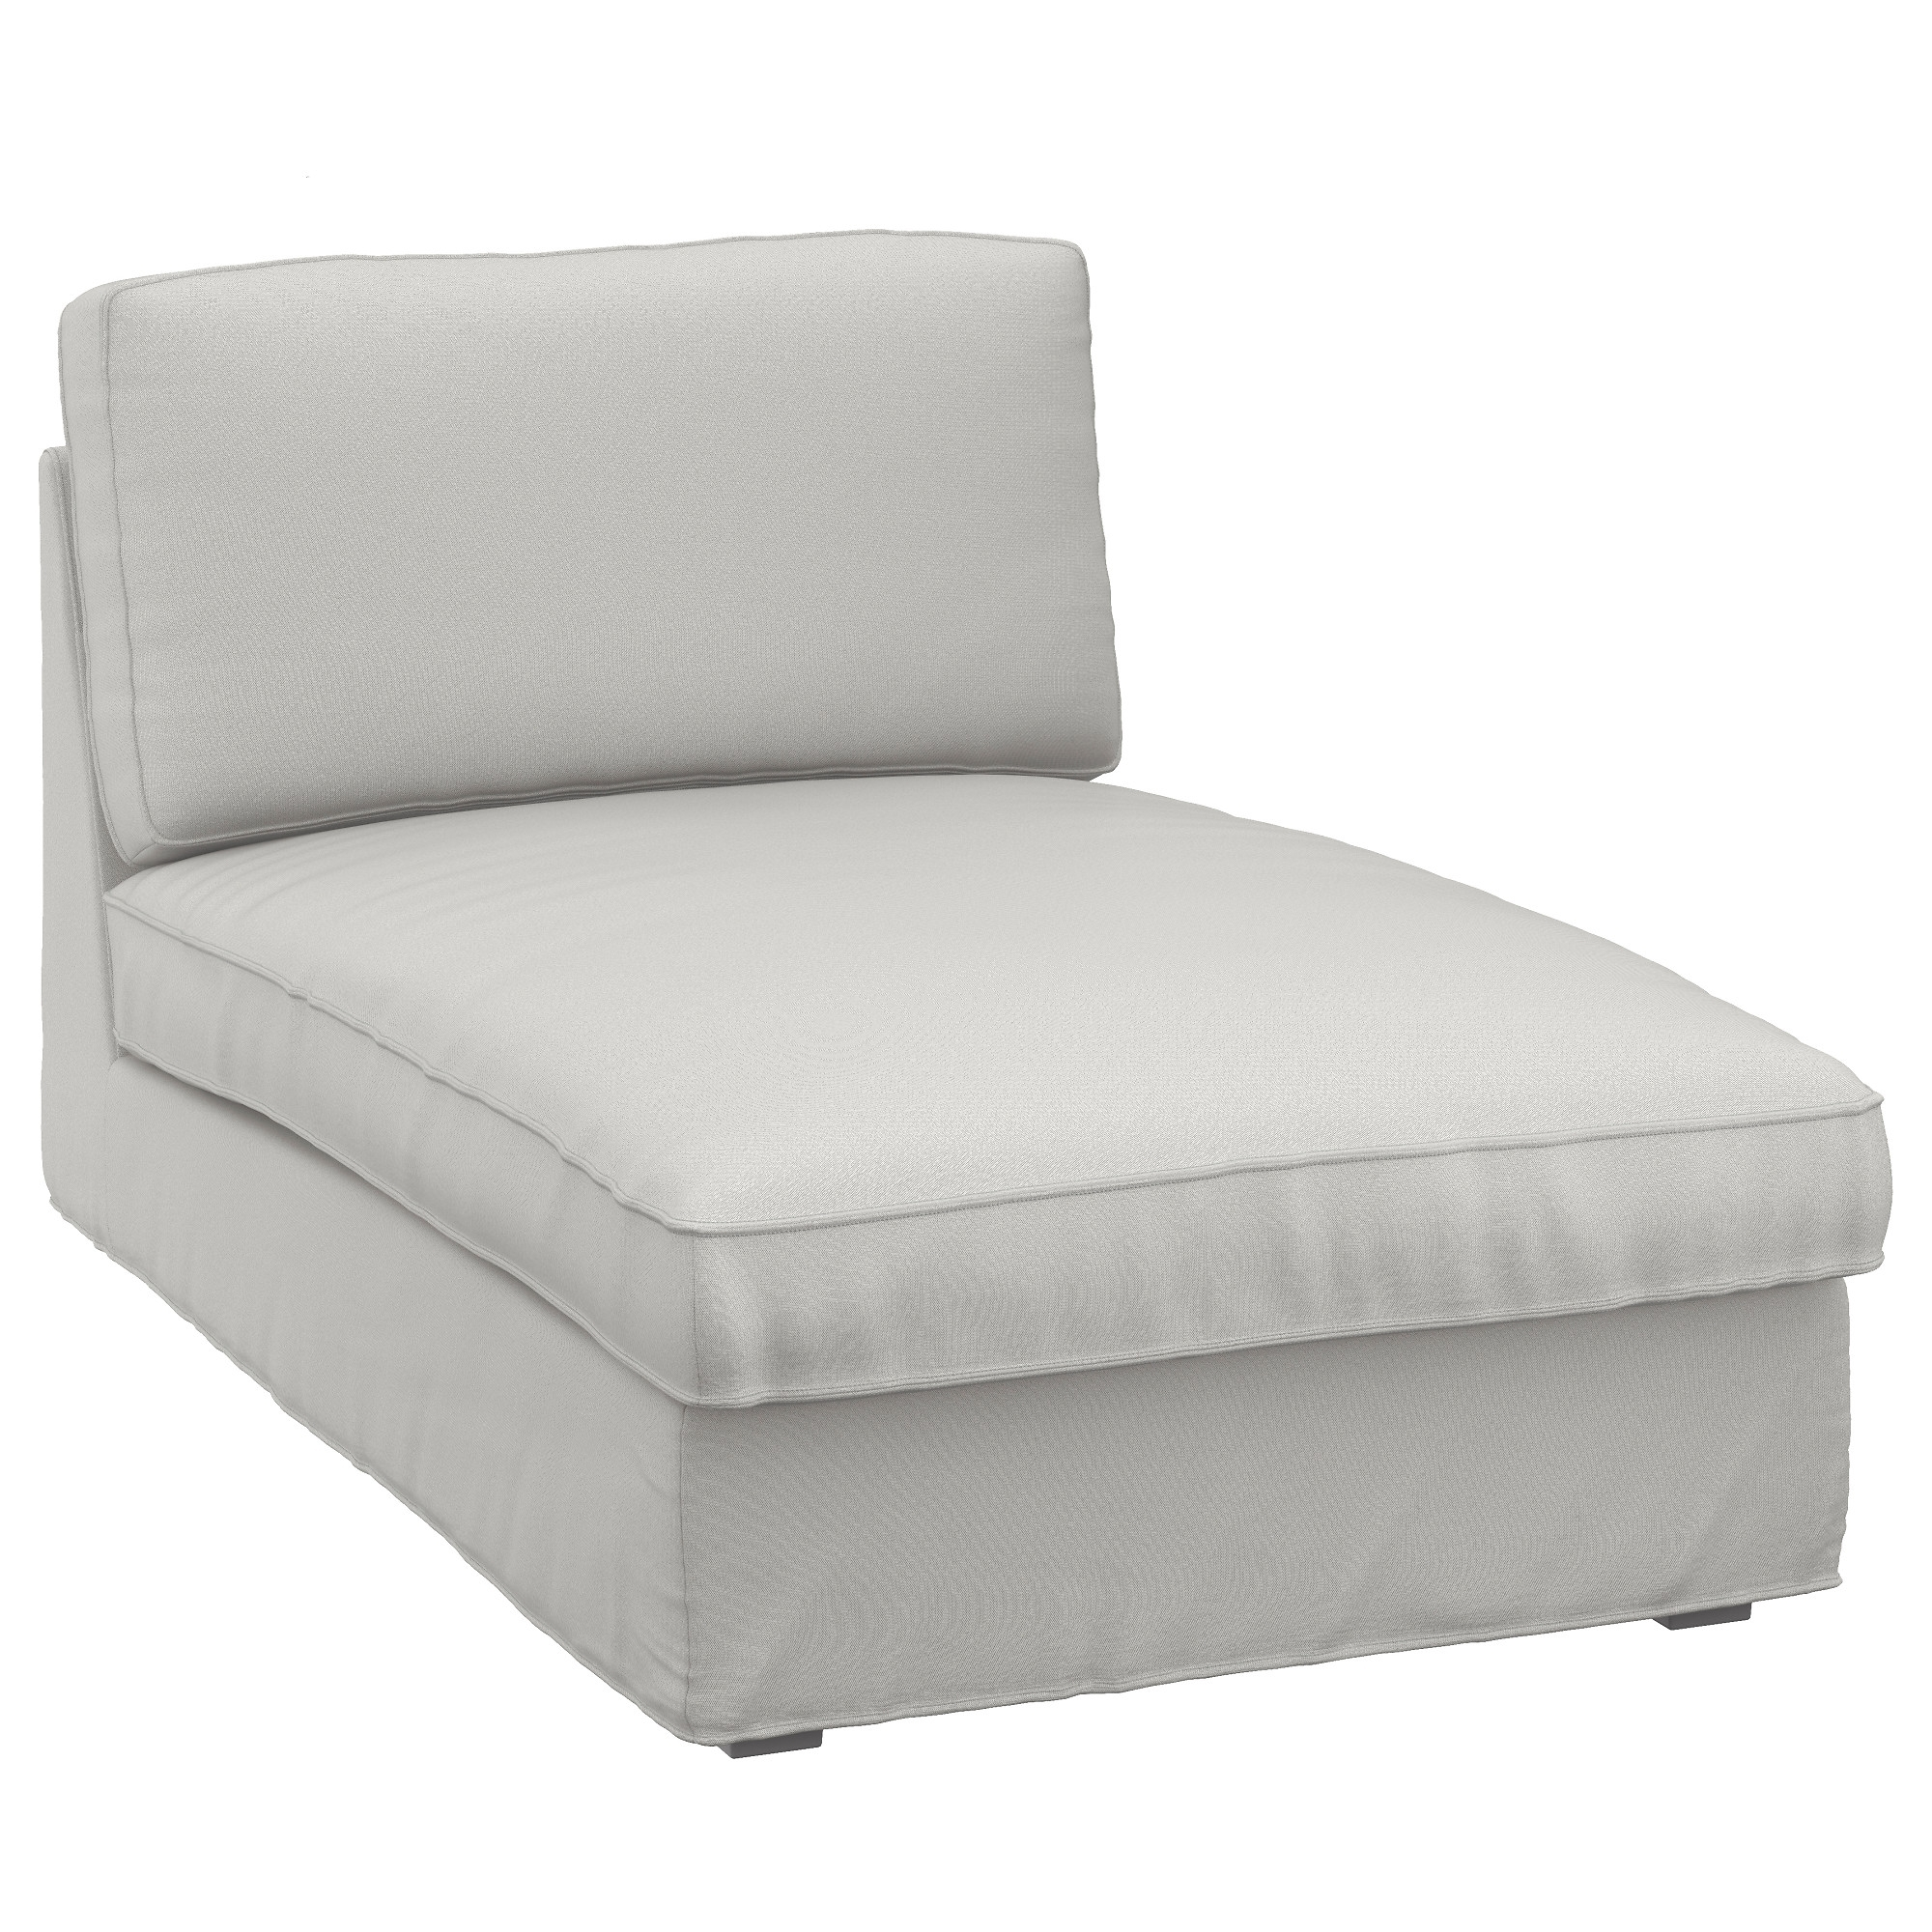 Favorite Chaise Lounges (View 3 of 15)